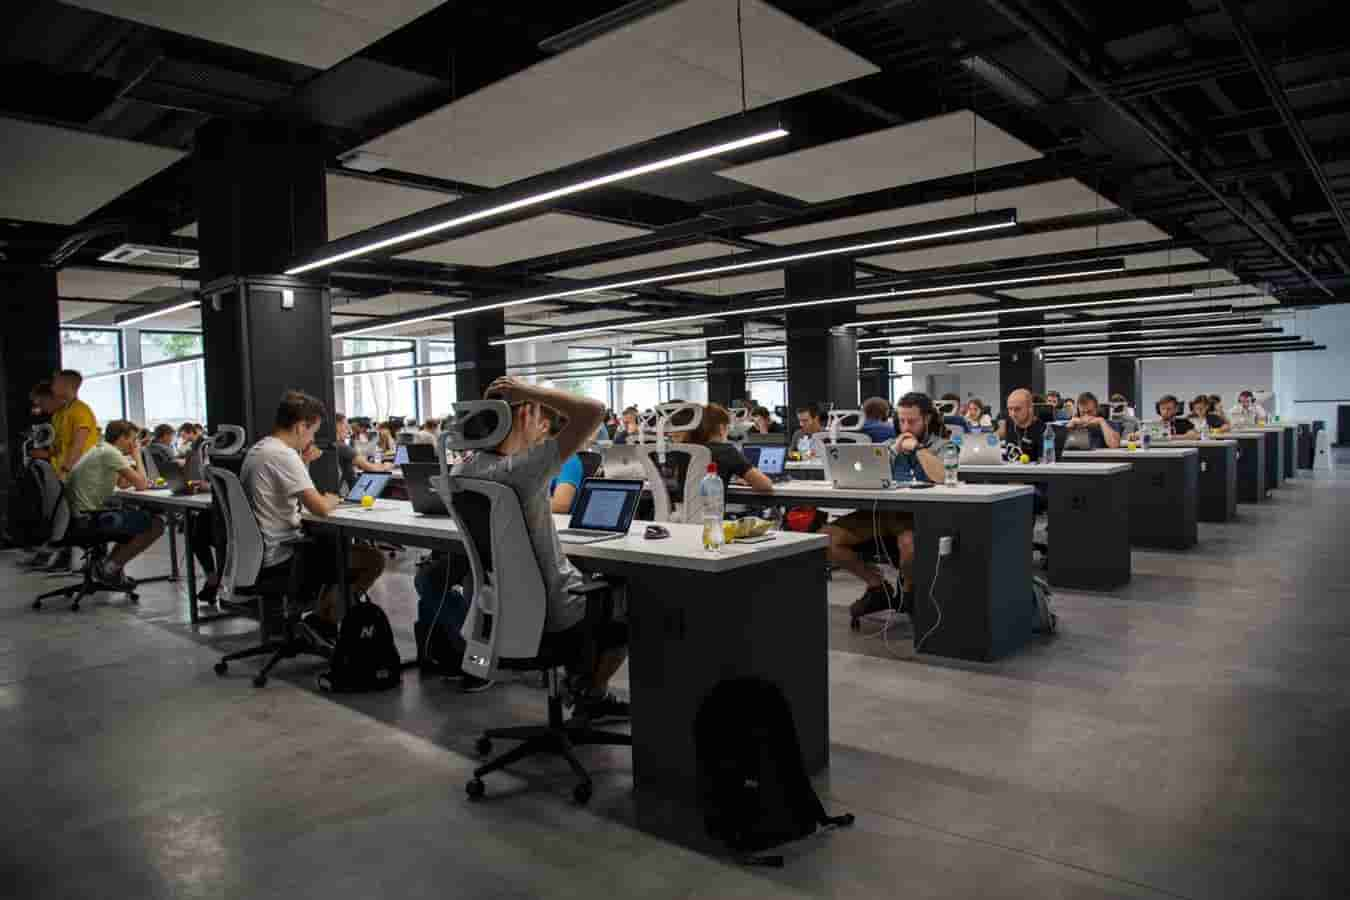 Image | open floor work space with people working on computers